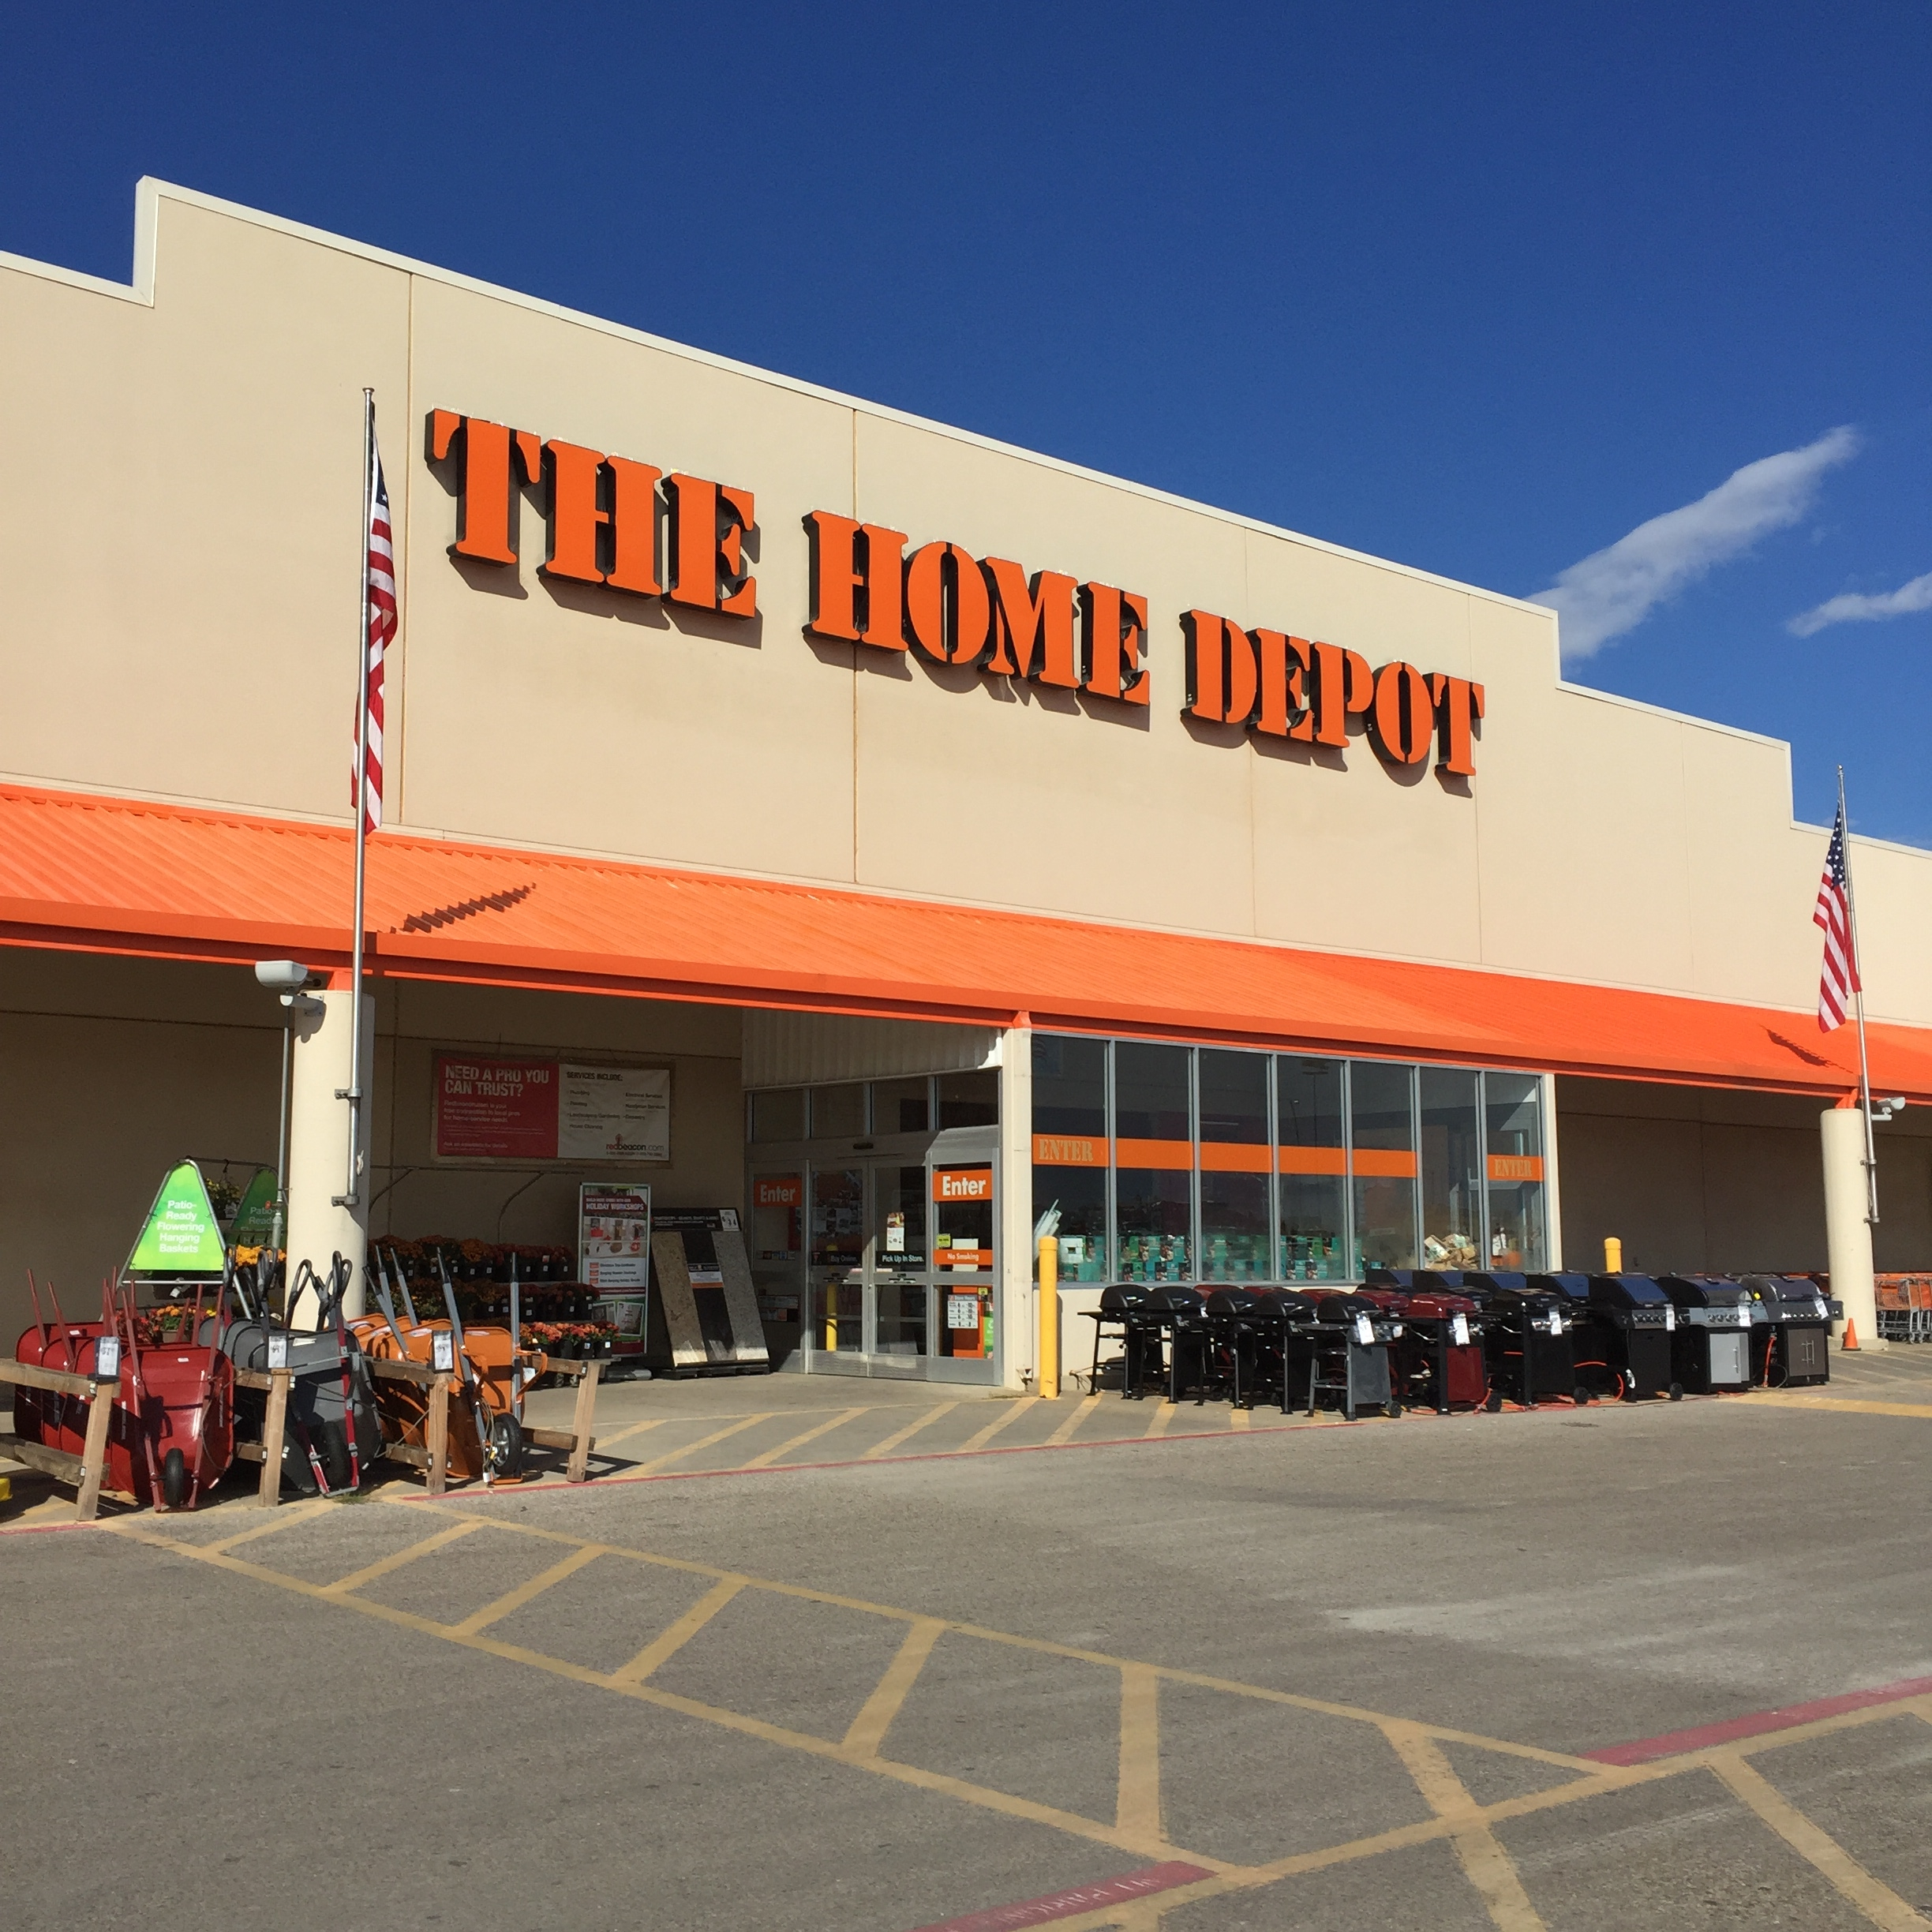 Complete Home Depot in Lubbock, Texas locations and hours of operation. Home Depot opening and closing times for stores near by. Address, phone number, directions, and more.